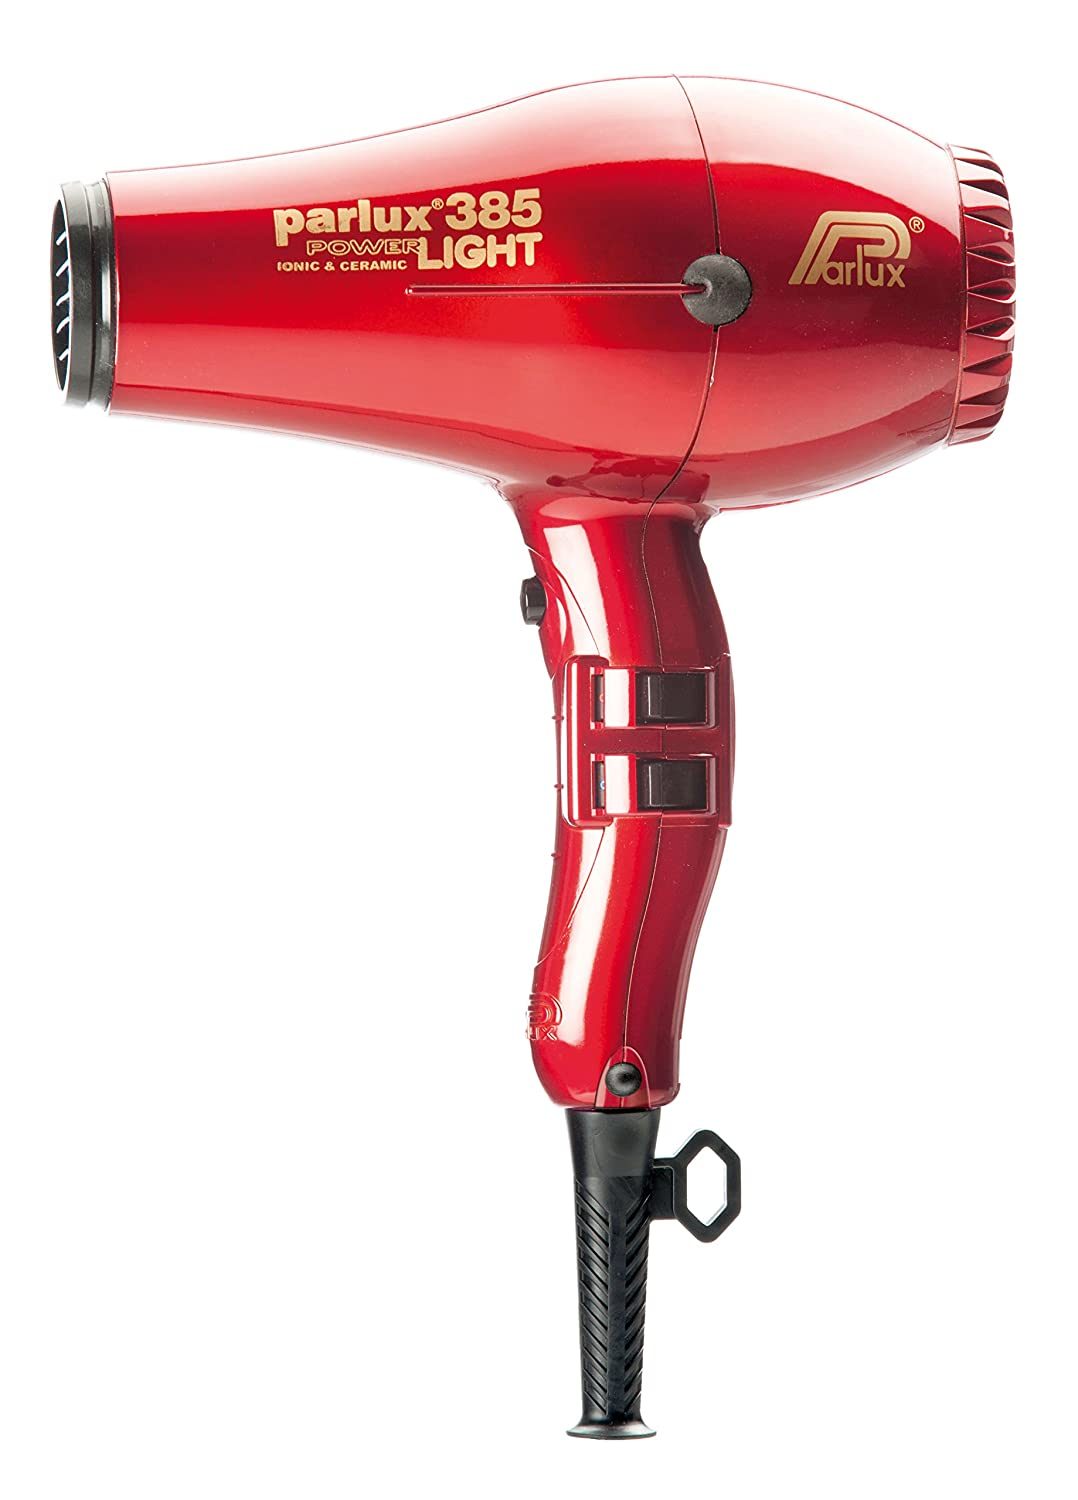 Parlux 385 PowerLight Ionic and Ceramic Hair Dryer – Red